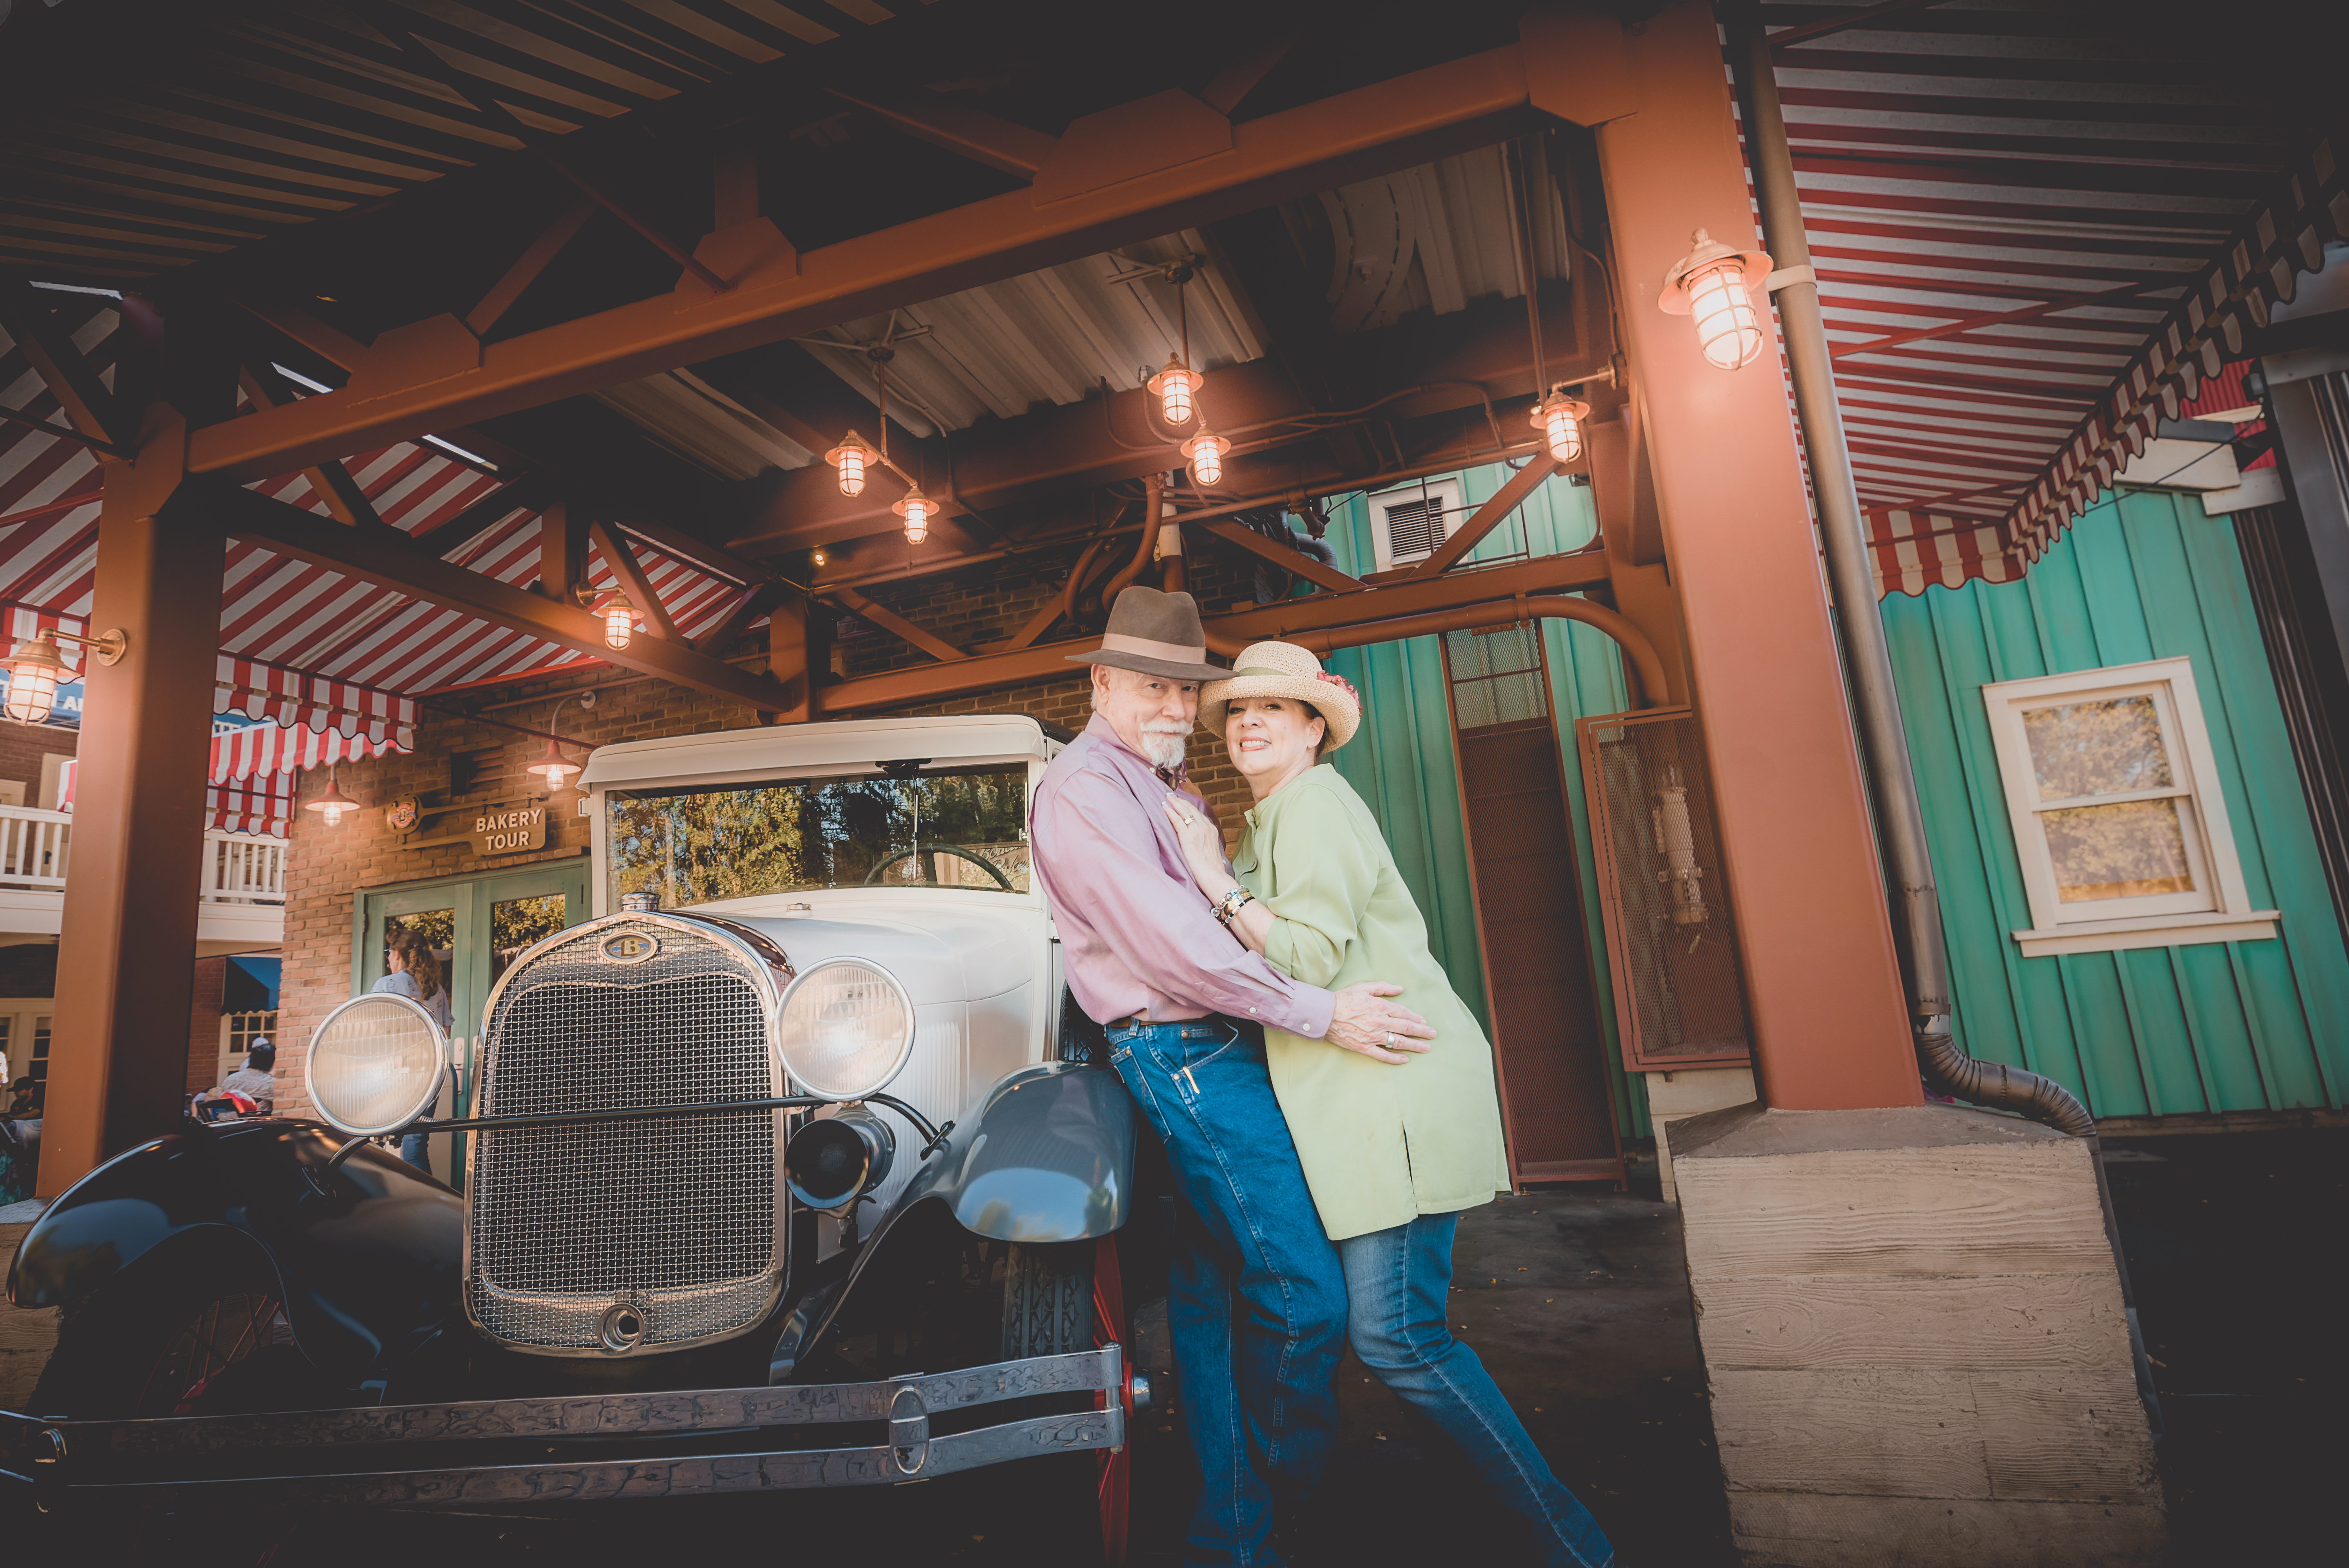 Wagner Couple next to a classic car in California Adventure